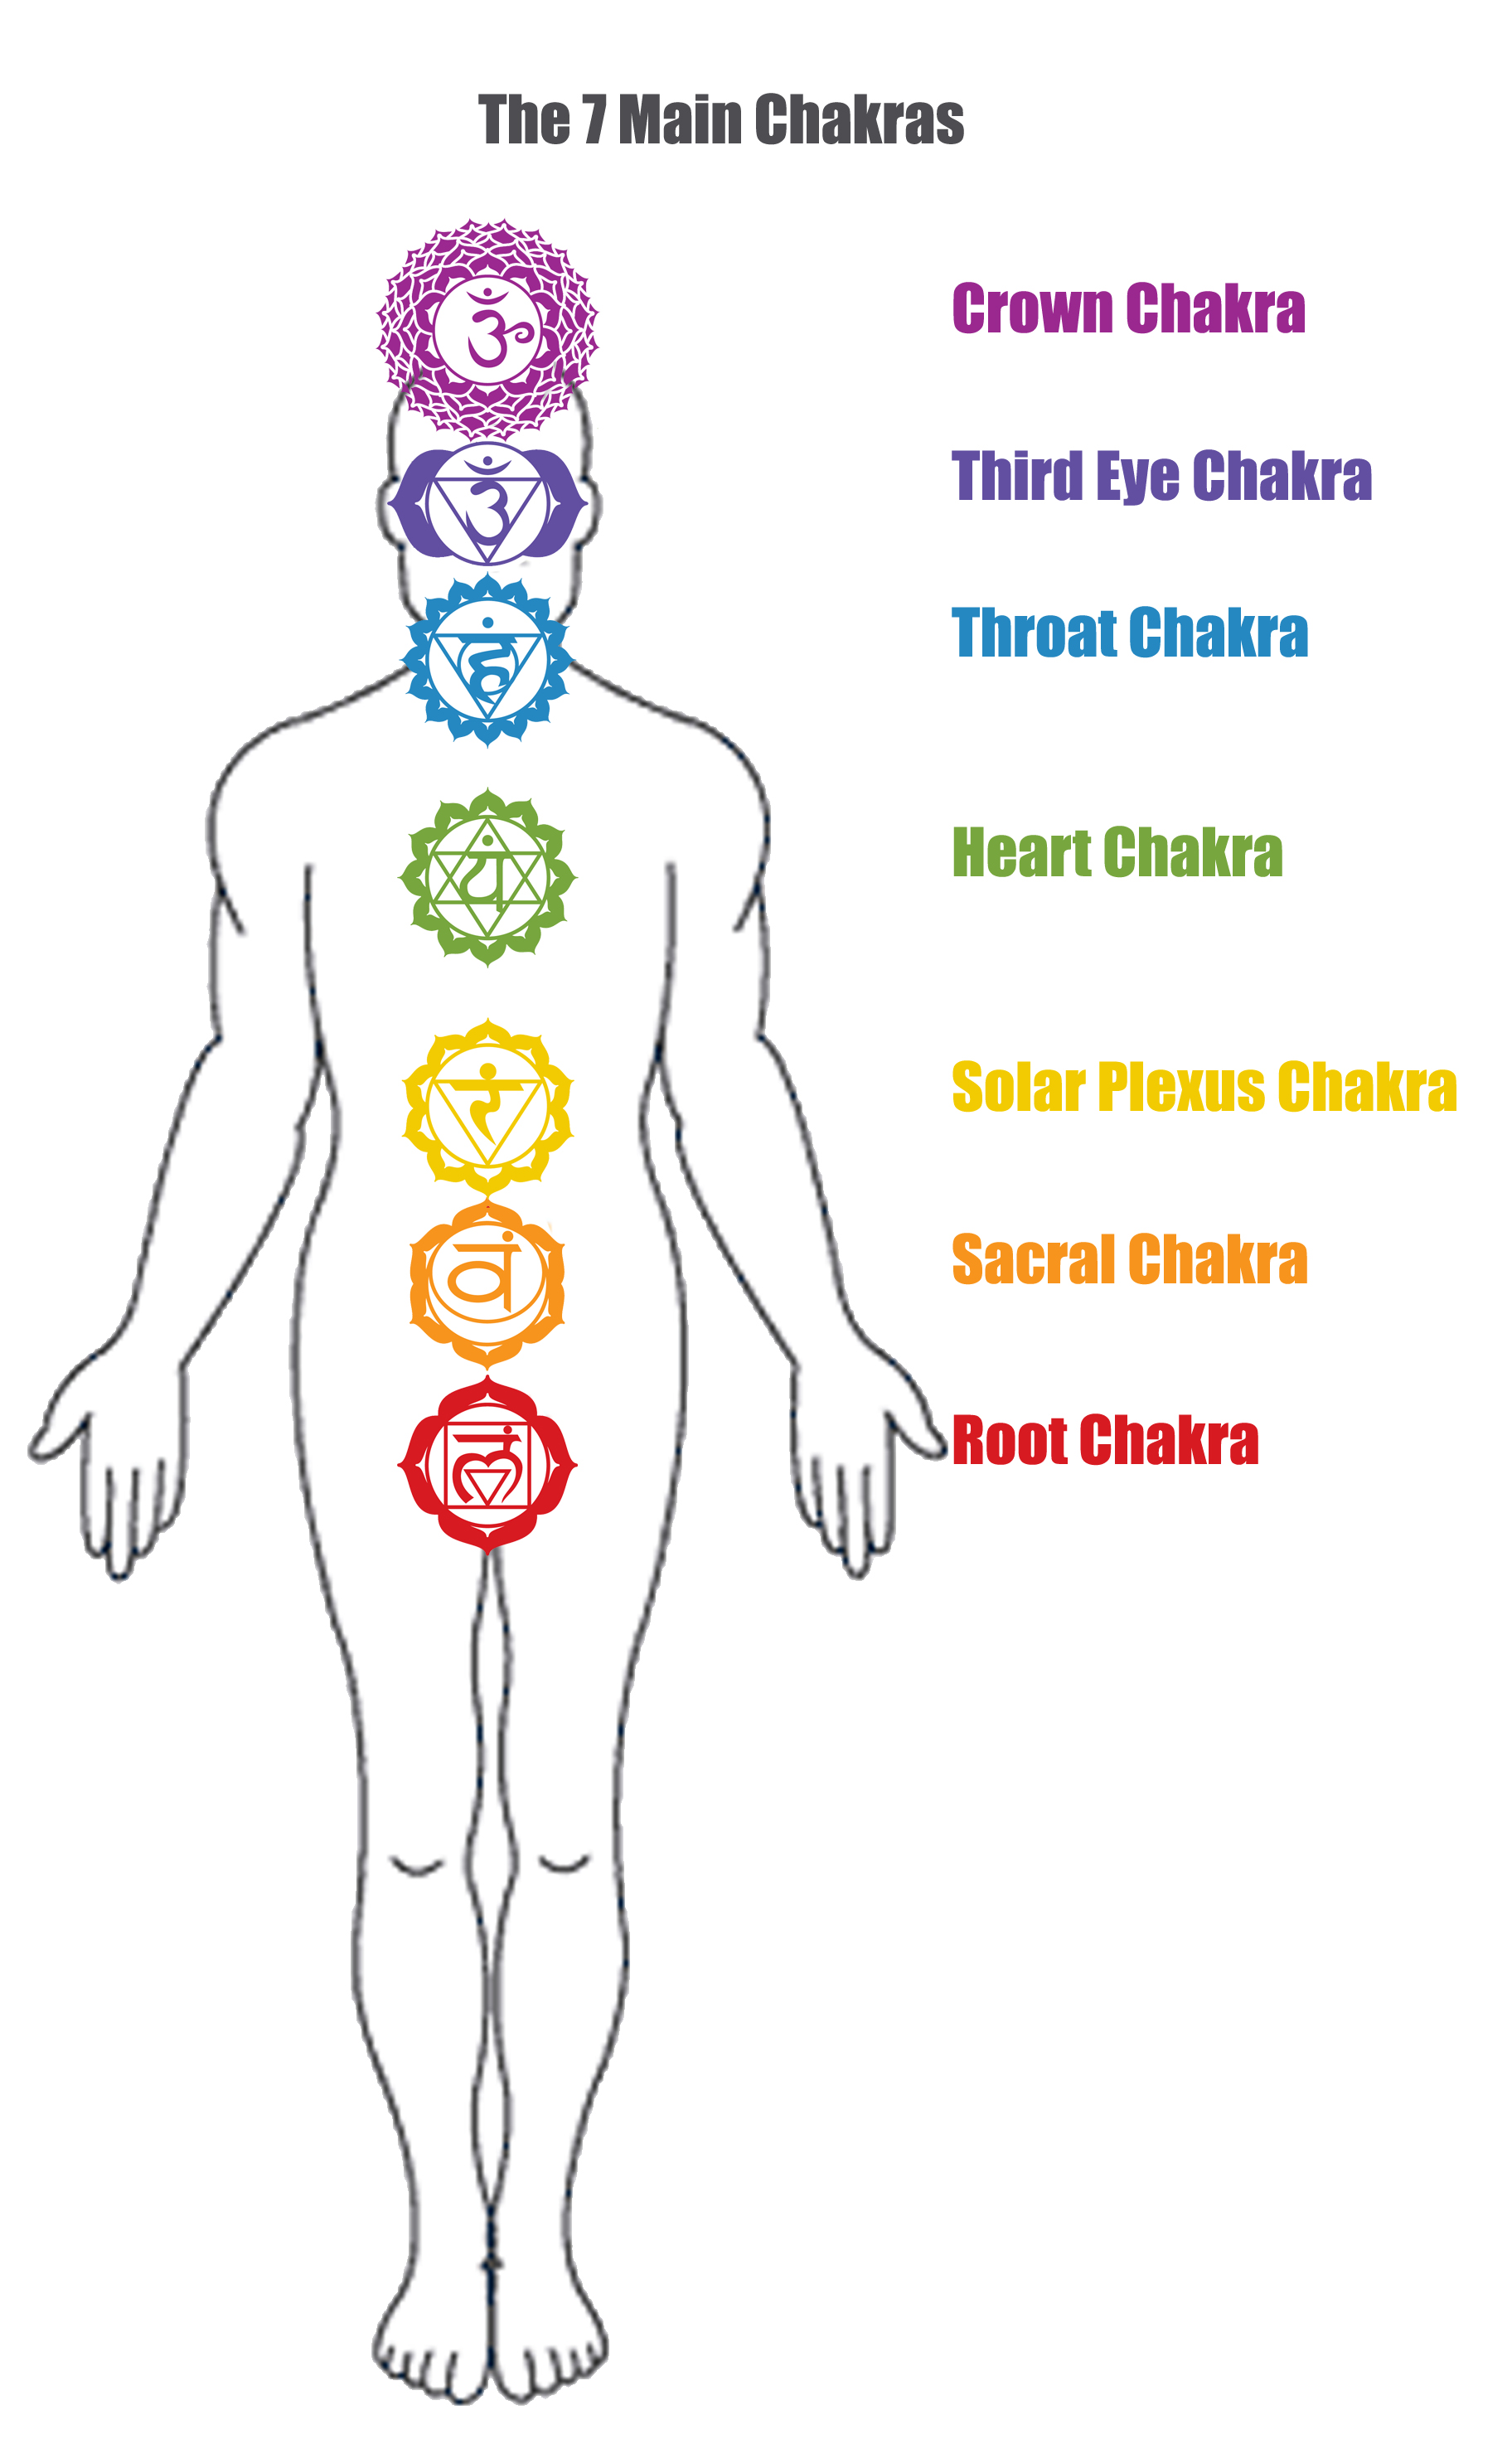 What is a ChakraMSI Healing